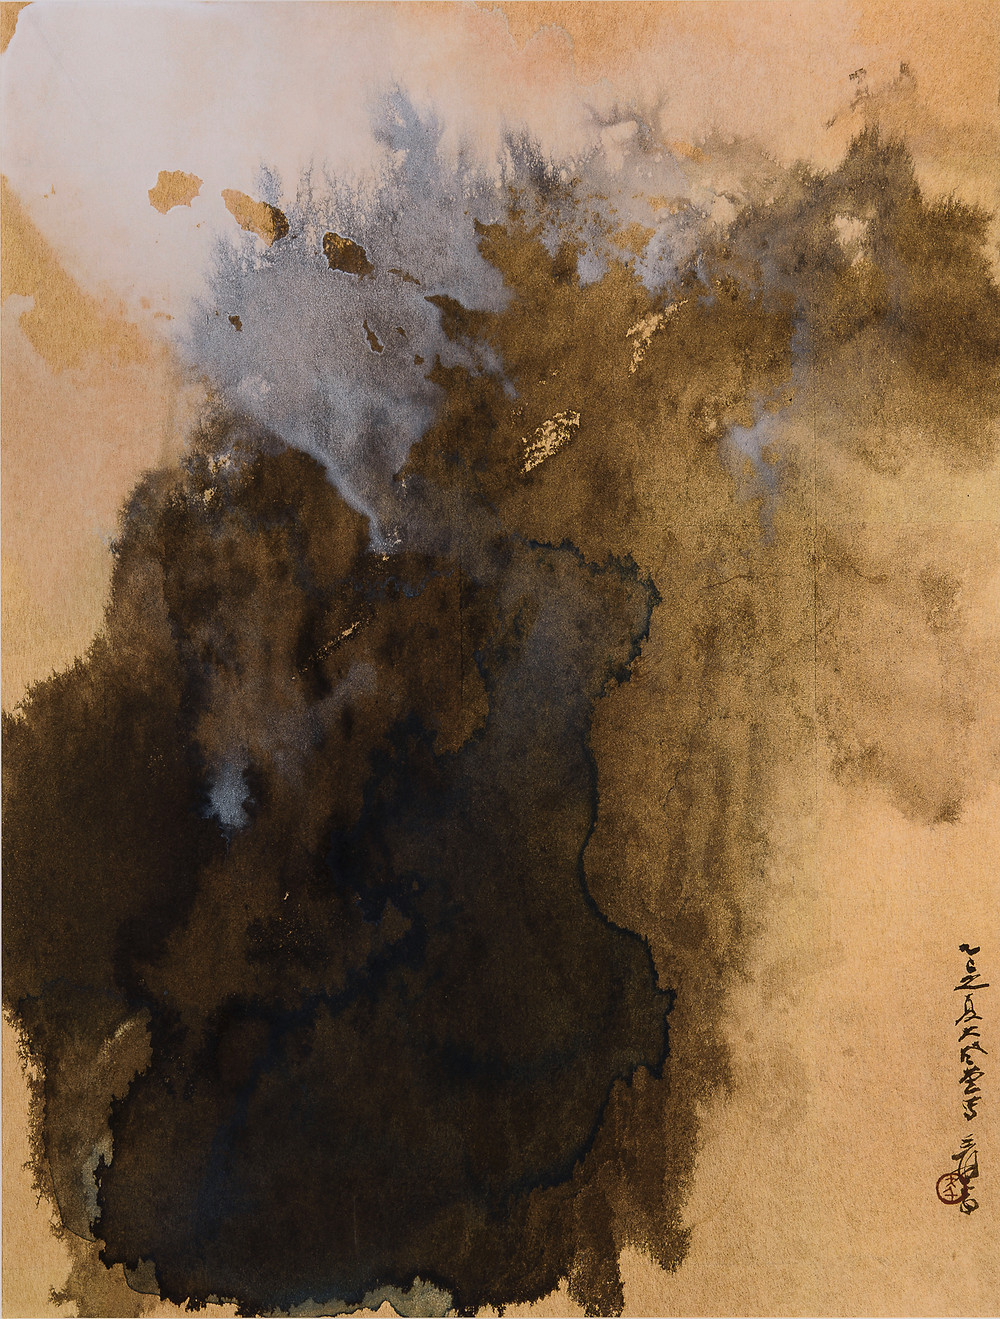 Zhang Daqian, Landscape, 1965. Collection of Peter and Collette Rothschild.